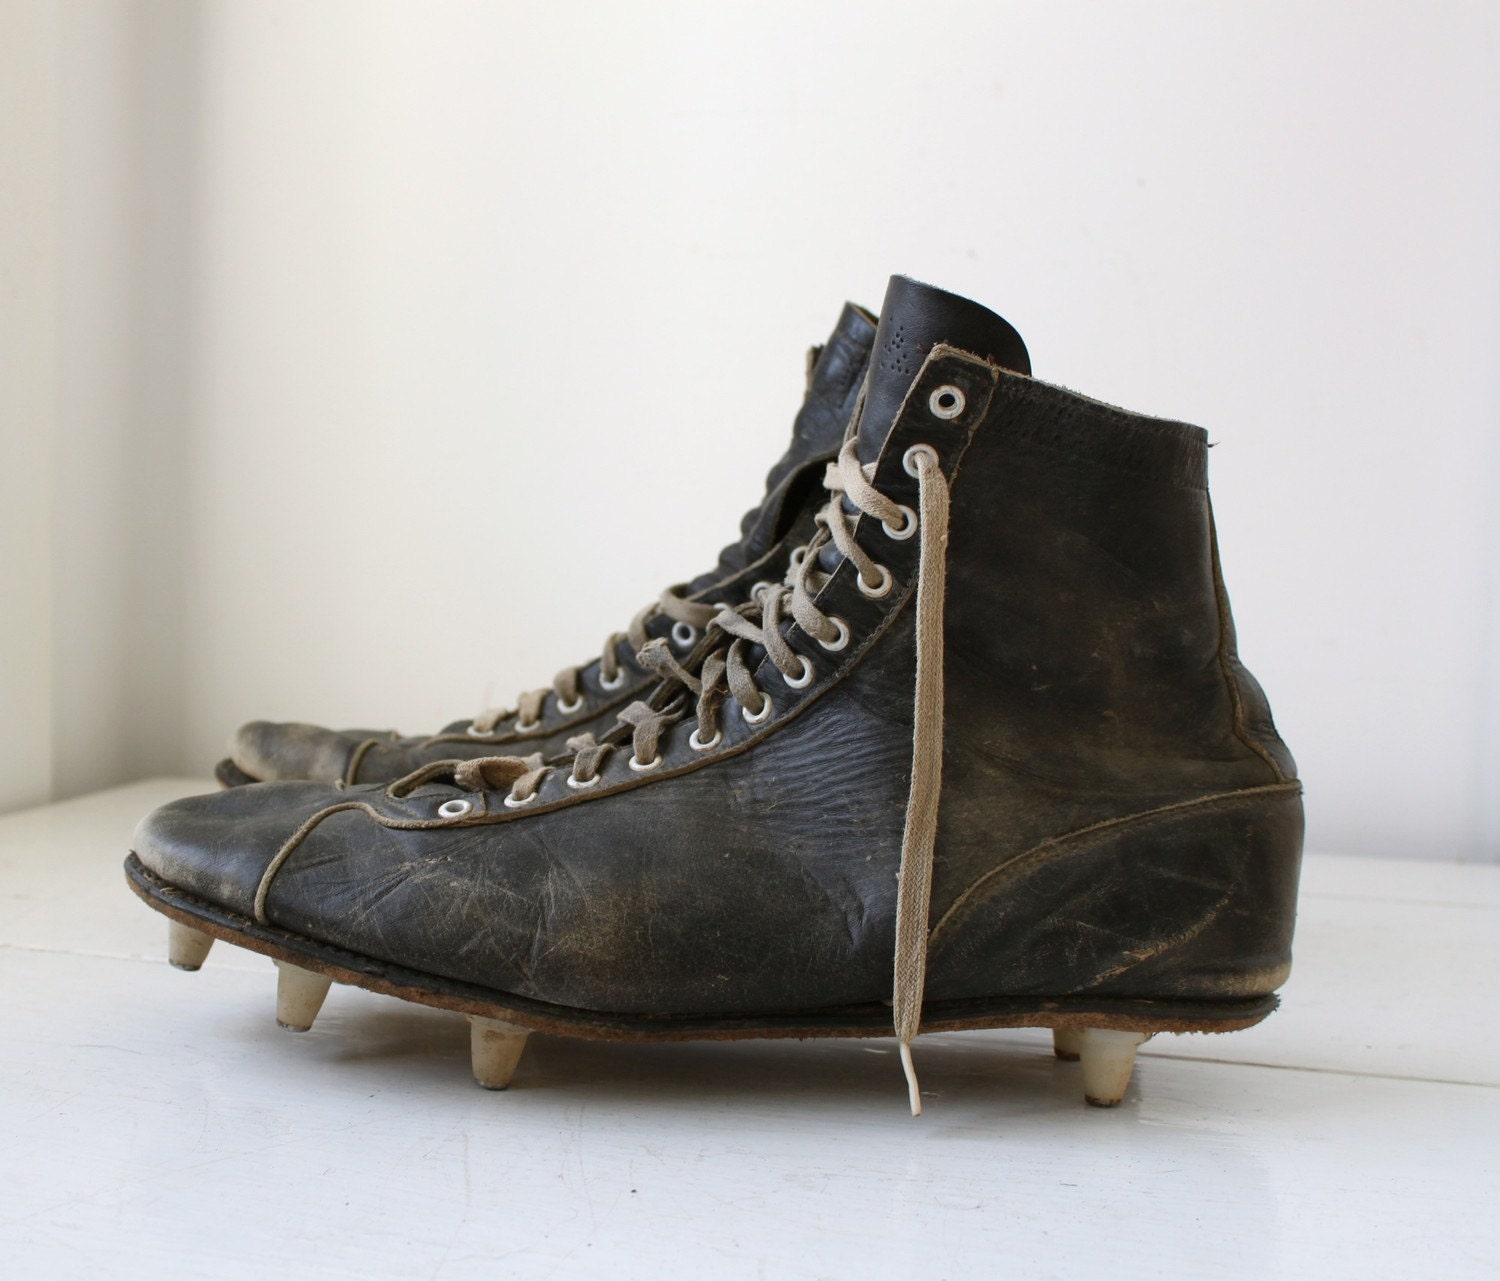 Vintage 1940s Football Cleats By Magnus 11 5